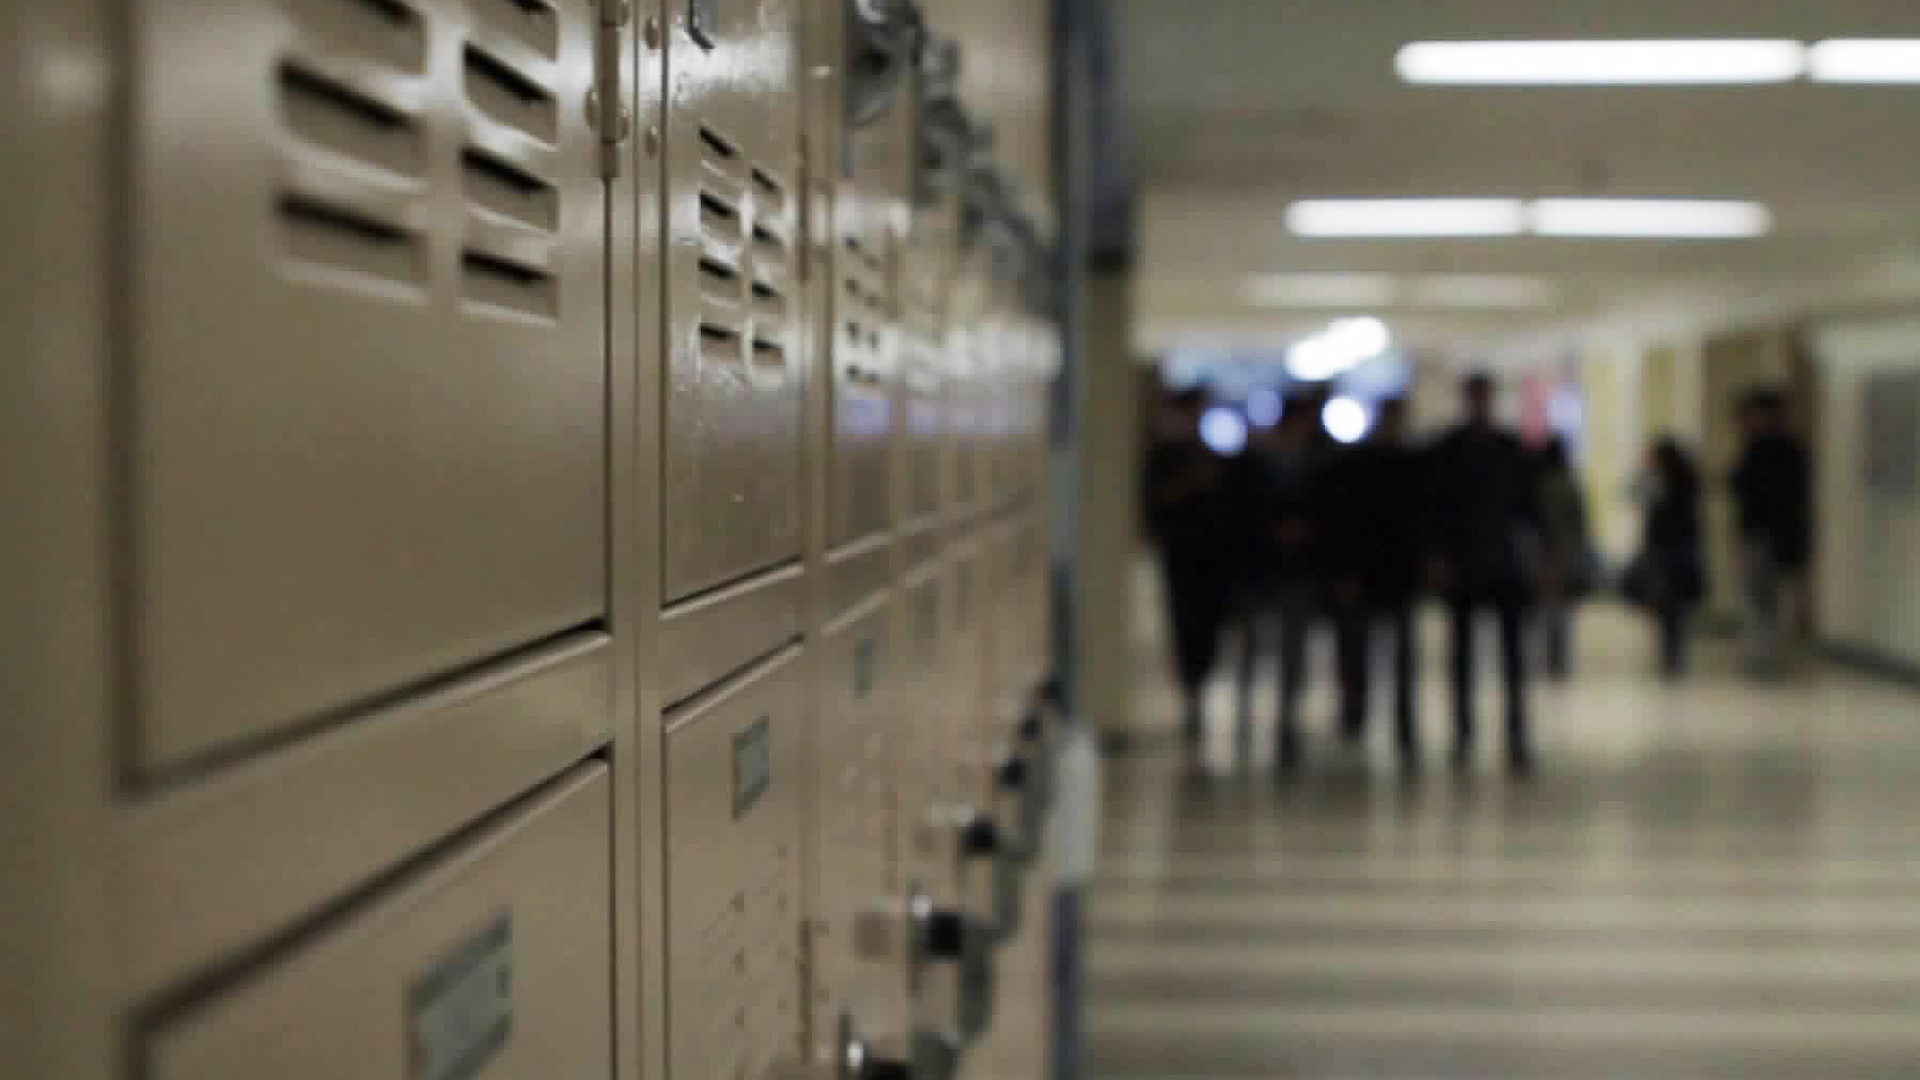 School lockers are seen in this file photo. (Credit: KTLA)